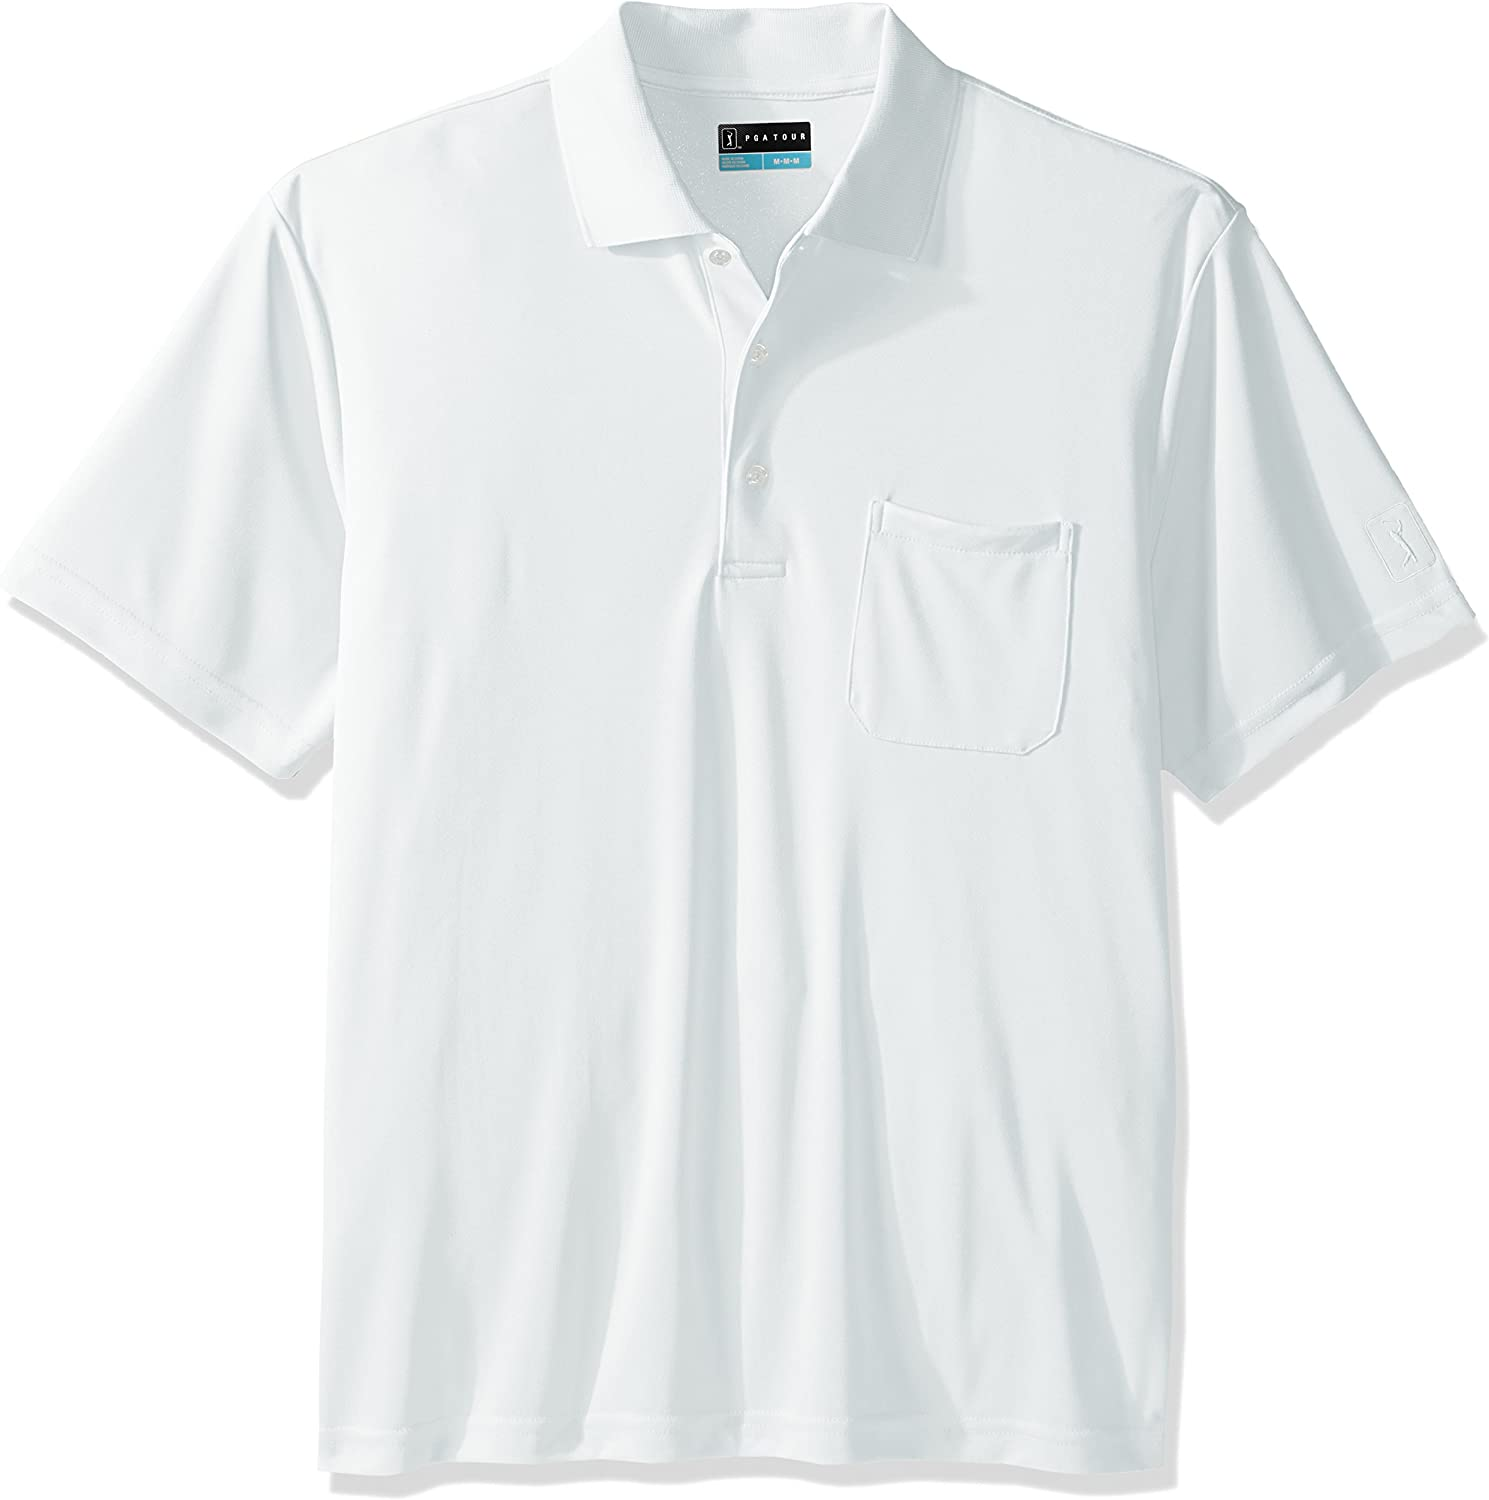 PGA TOUR Men's Driflux Solid Pocketed Polo, Bright White, Large